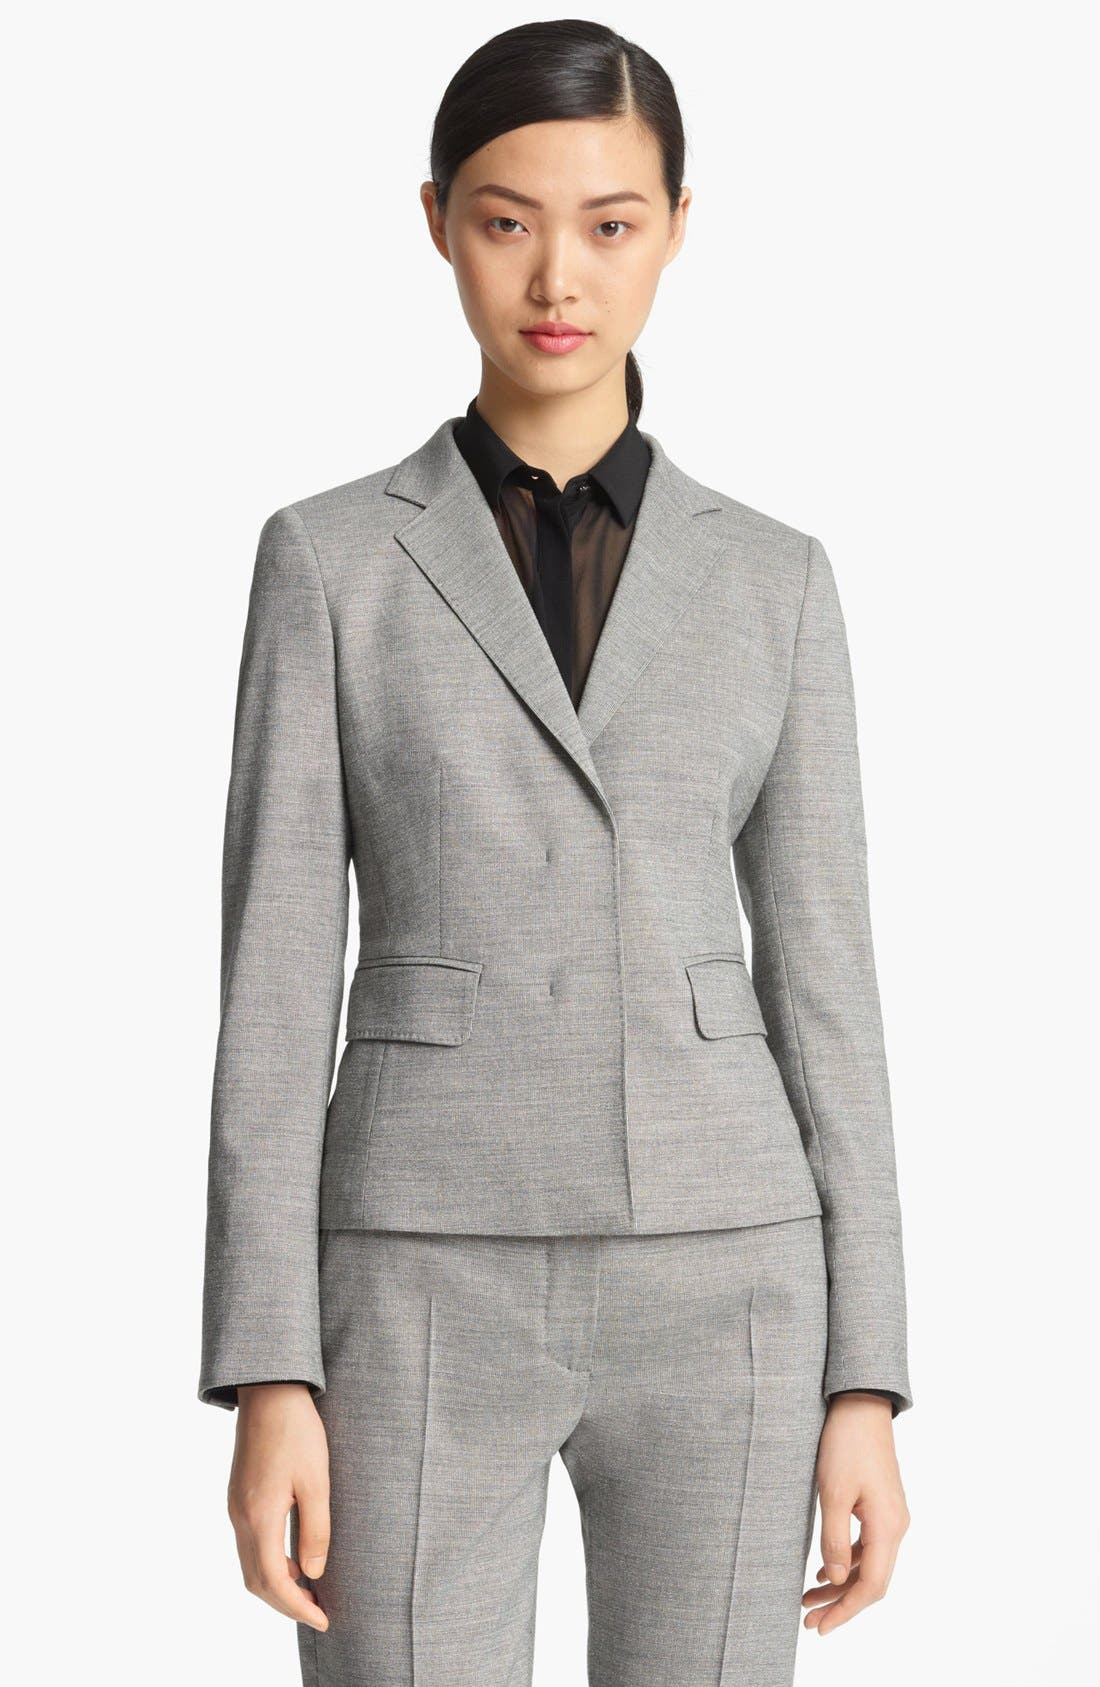 Alternate Image 1 Selected - Max Mara Wool & Silk Jacket